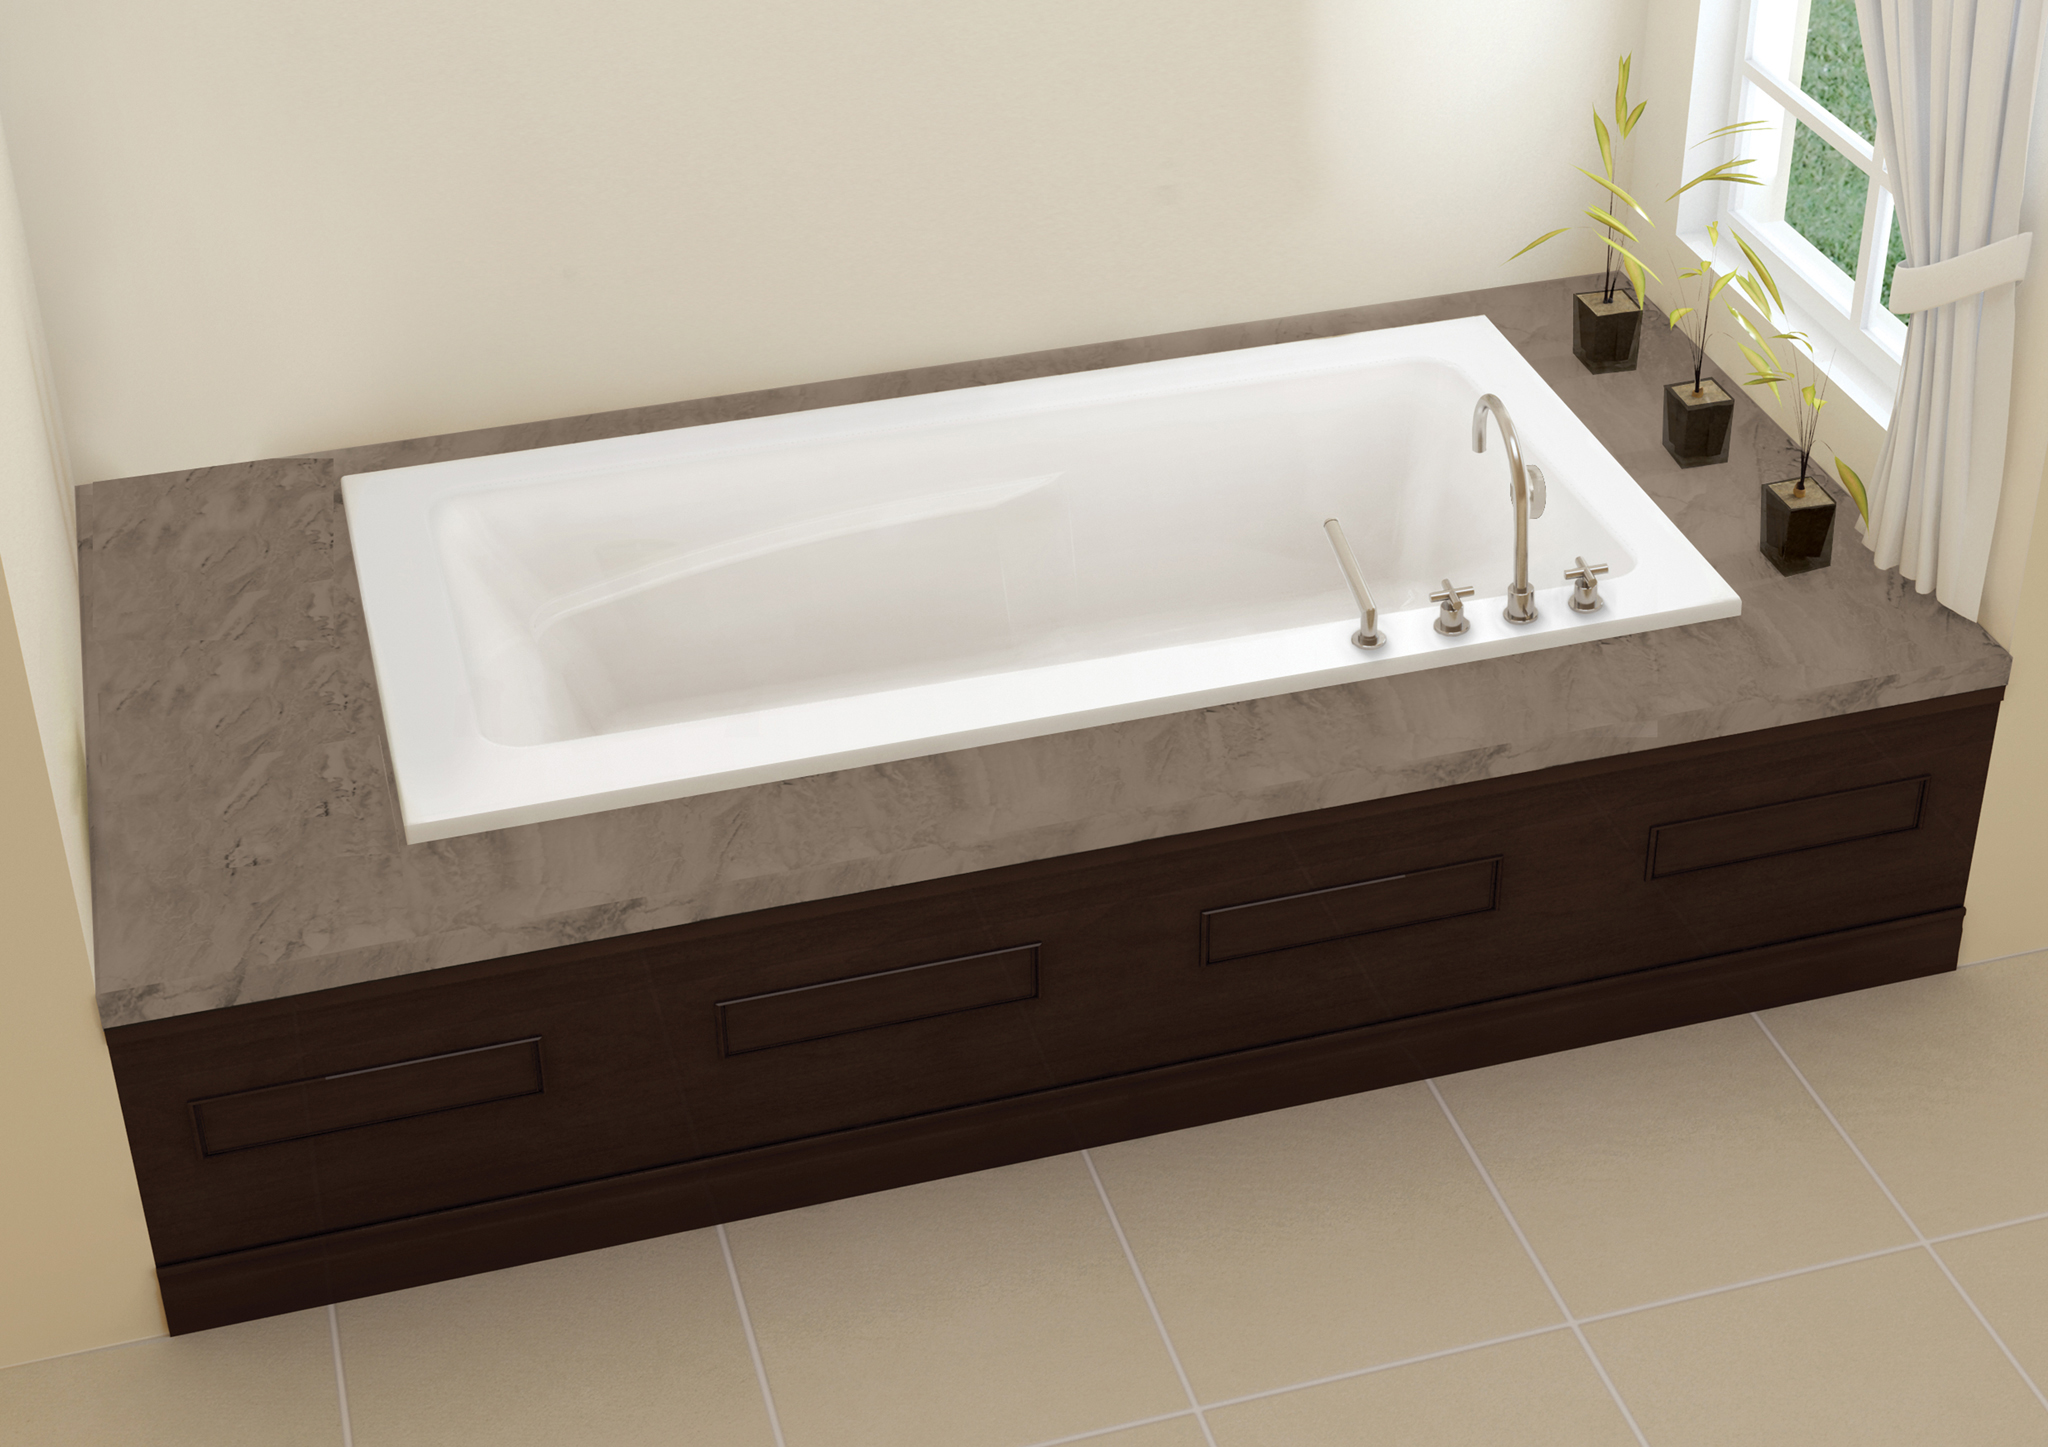 Oceania sublime 66 x 32 x 21 5 alcove soaking bathtub for Alcove bathtub dimensions